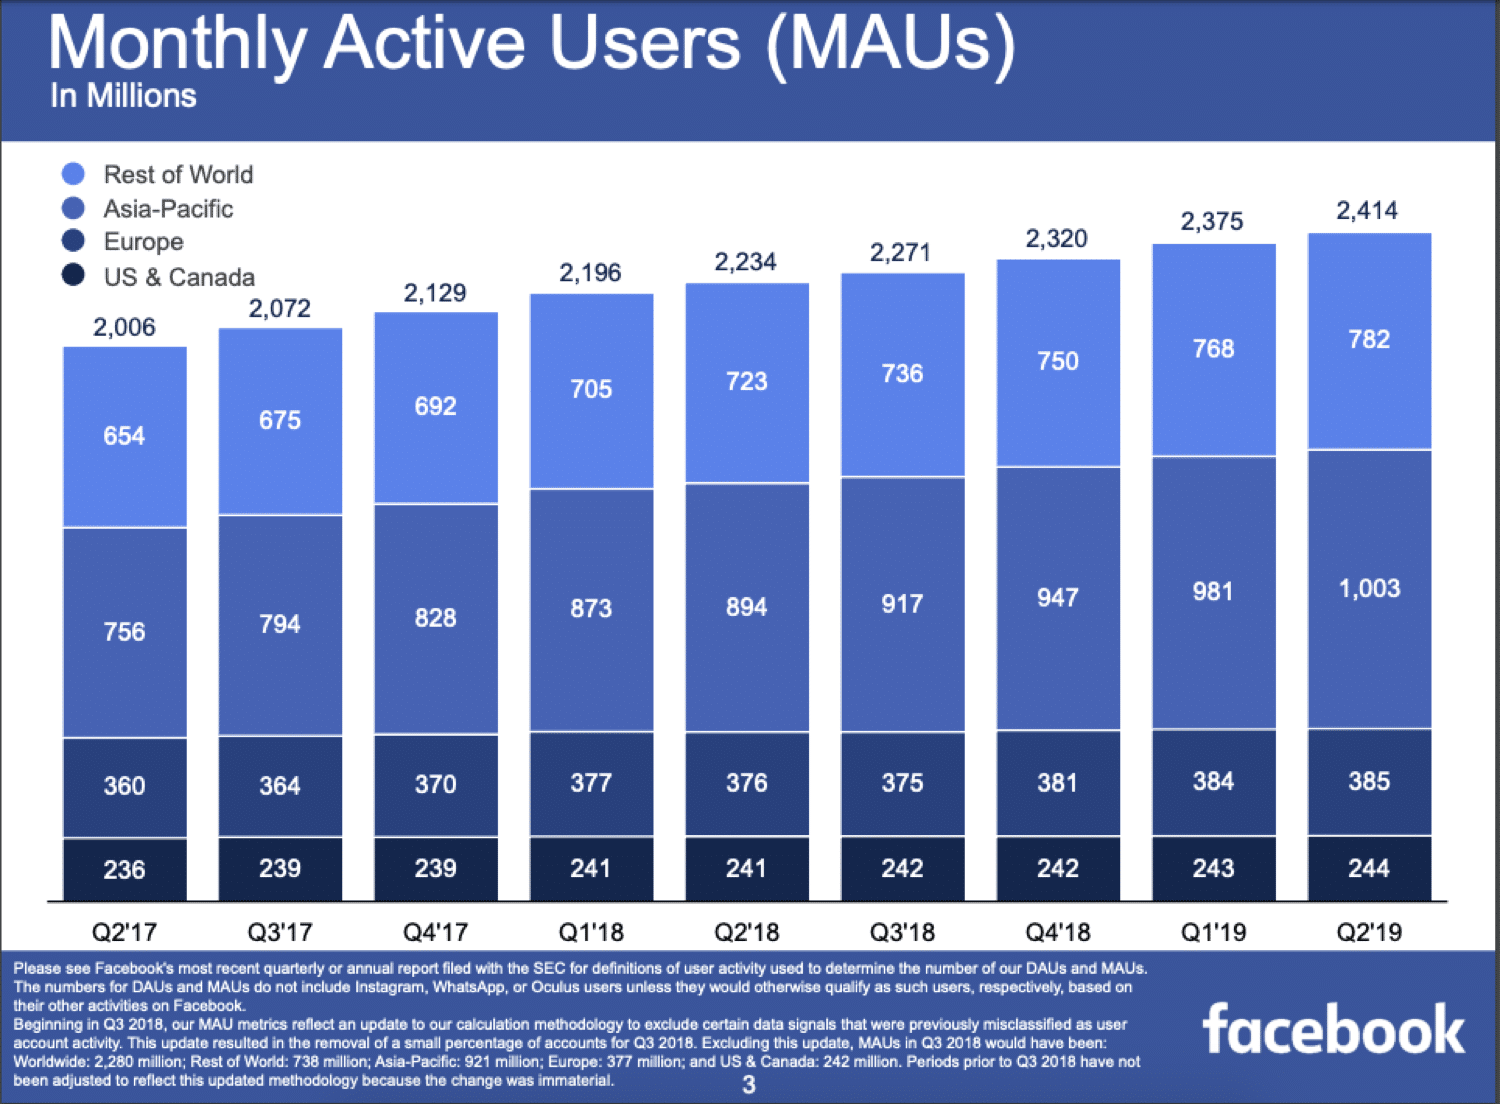 Monthly active users on Facebook